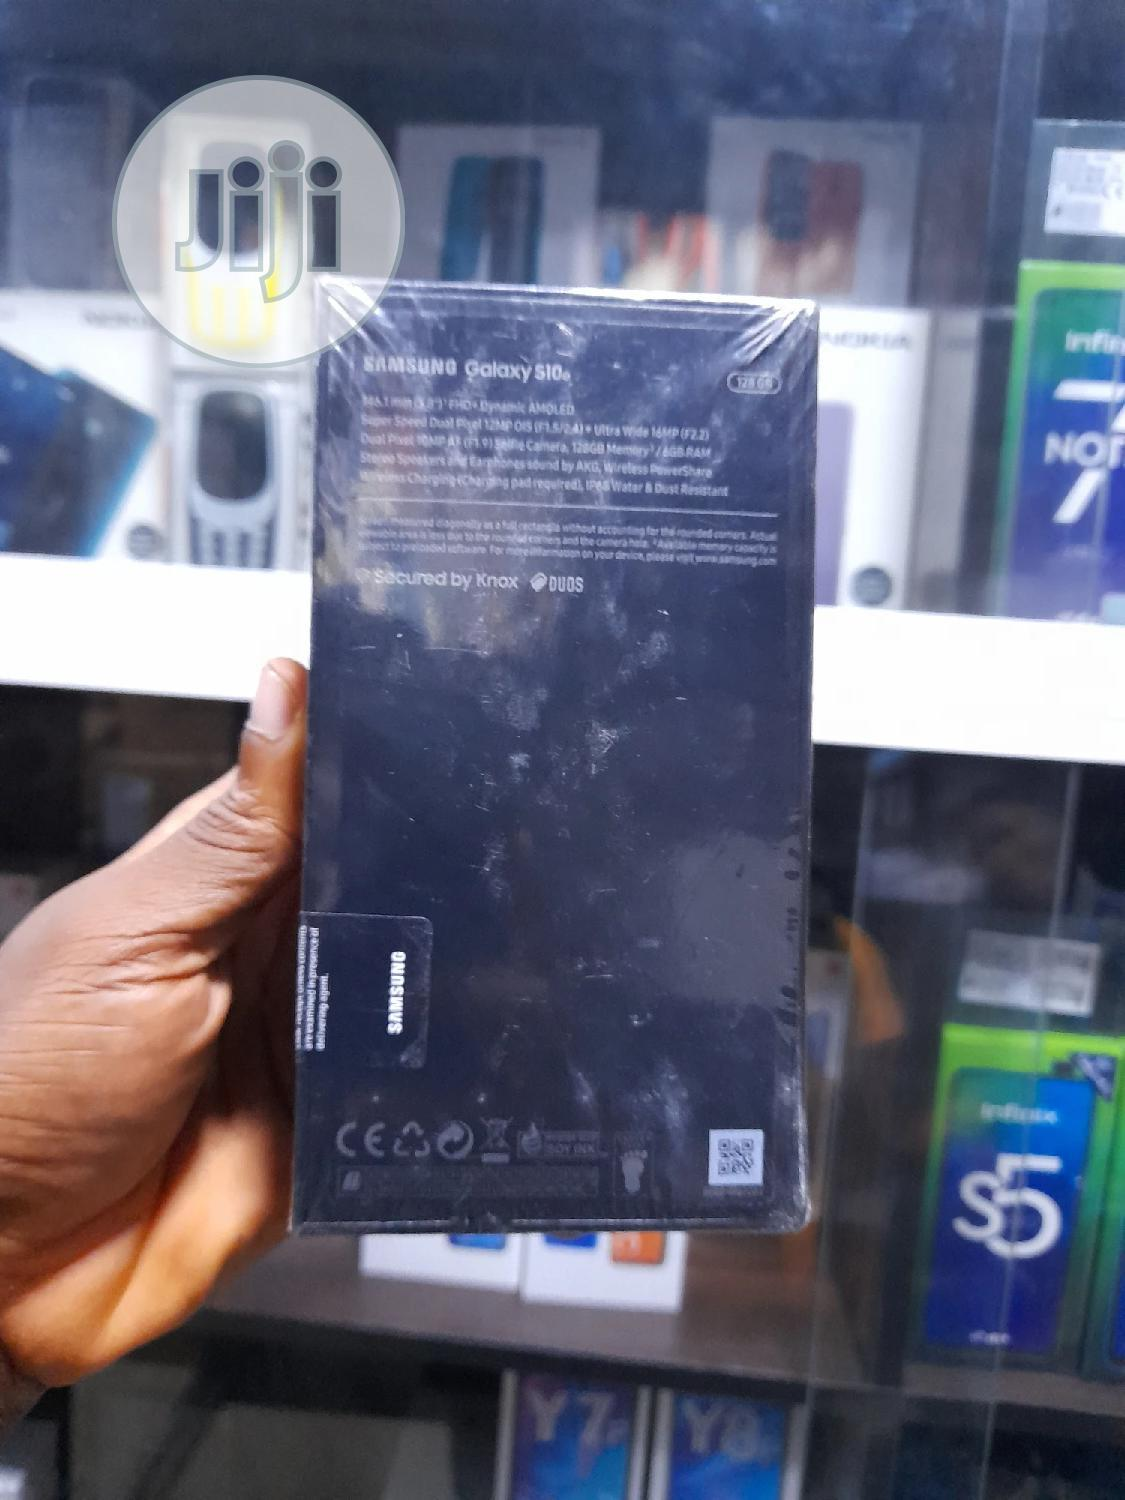 New Samsung Galaxy S10e 128 GB White | Mobile Phones for sale in Ikeja, Lagos State, Nigeria